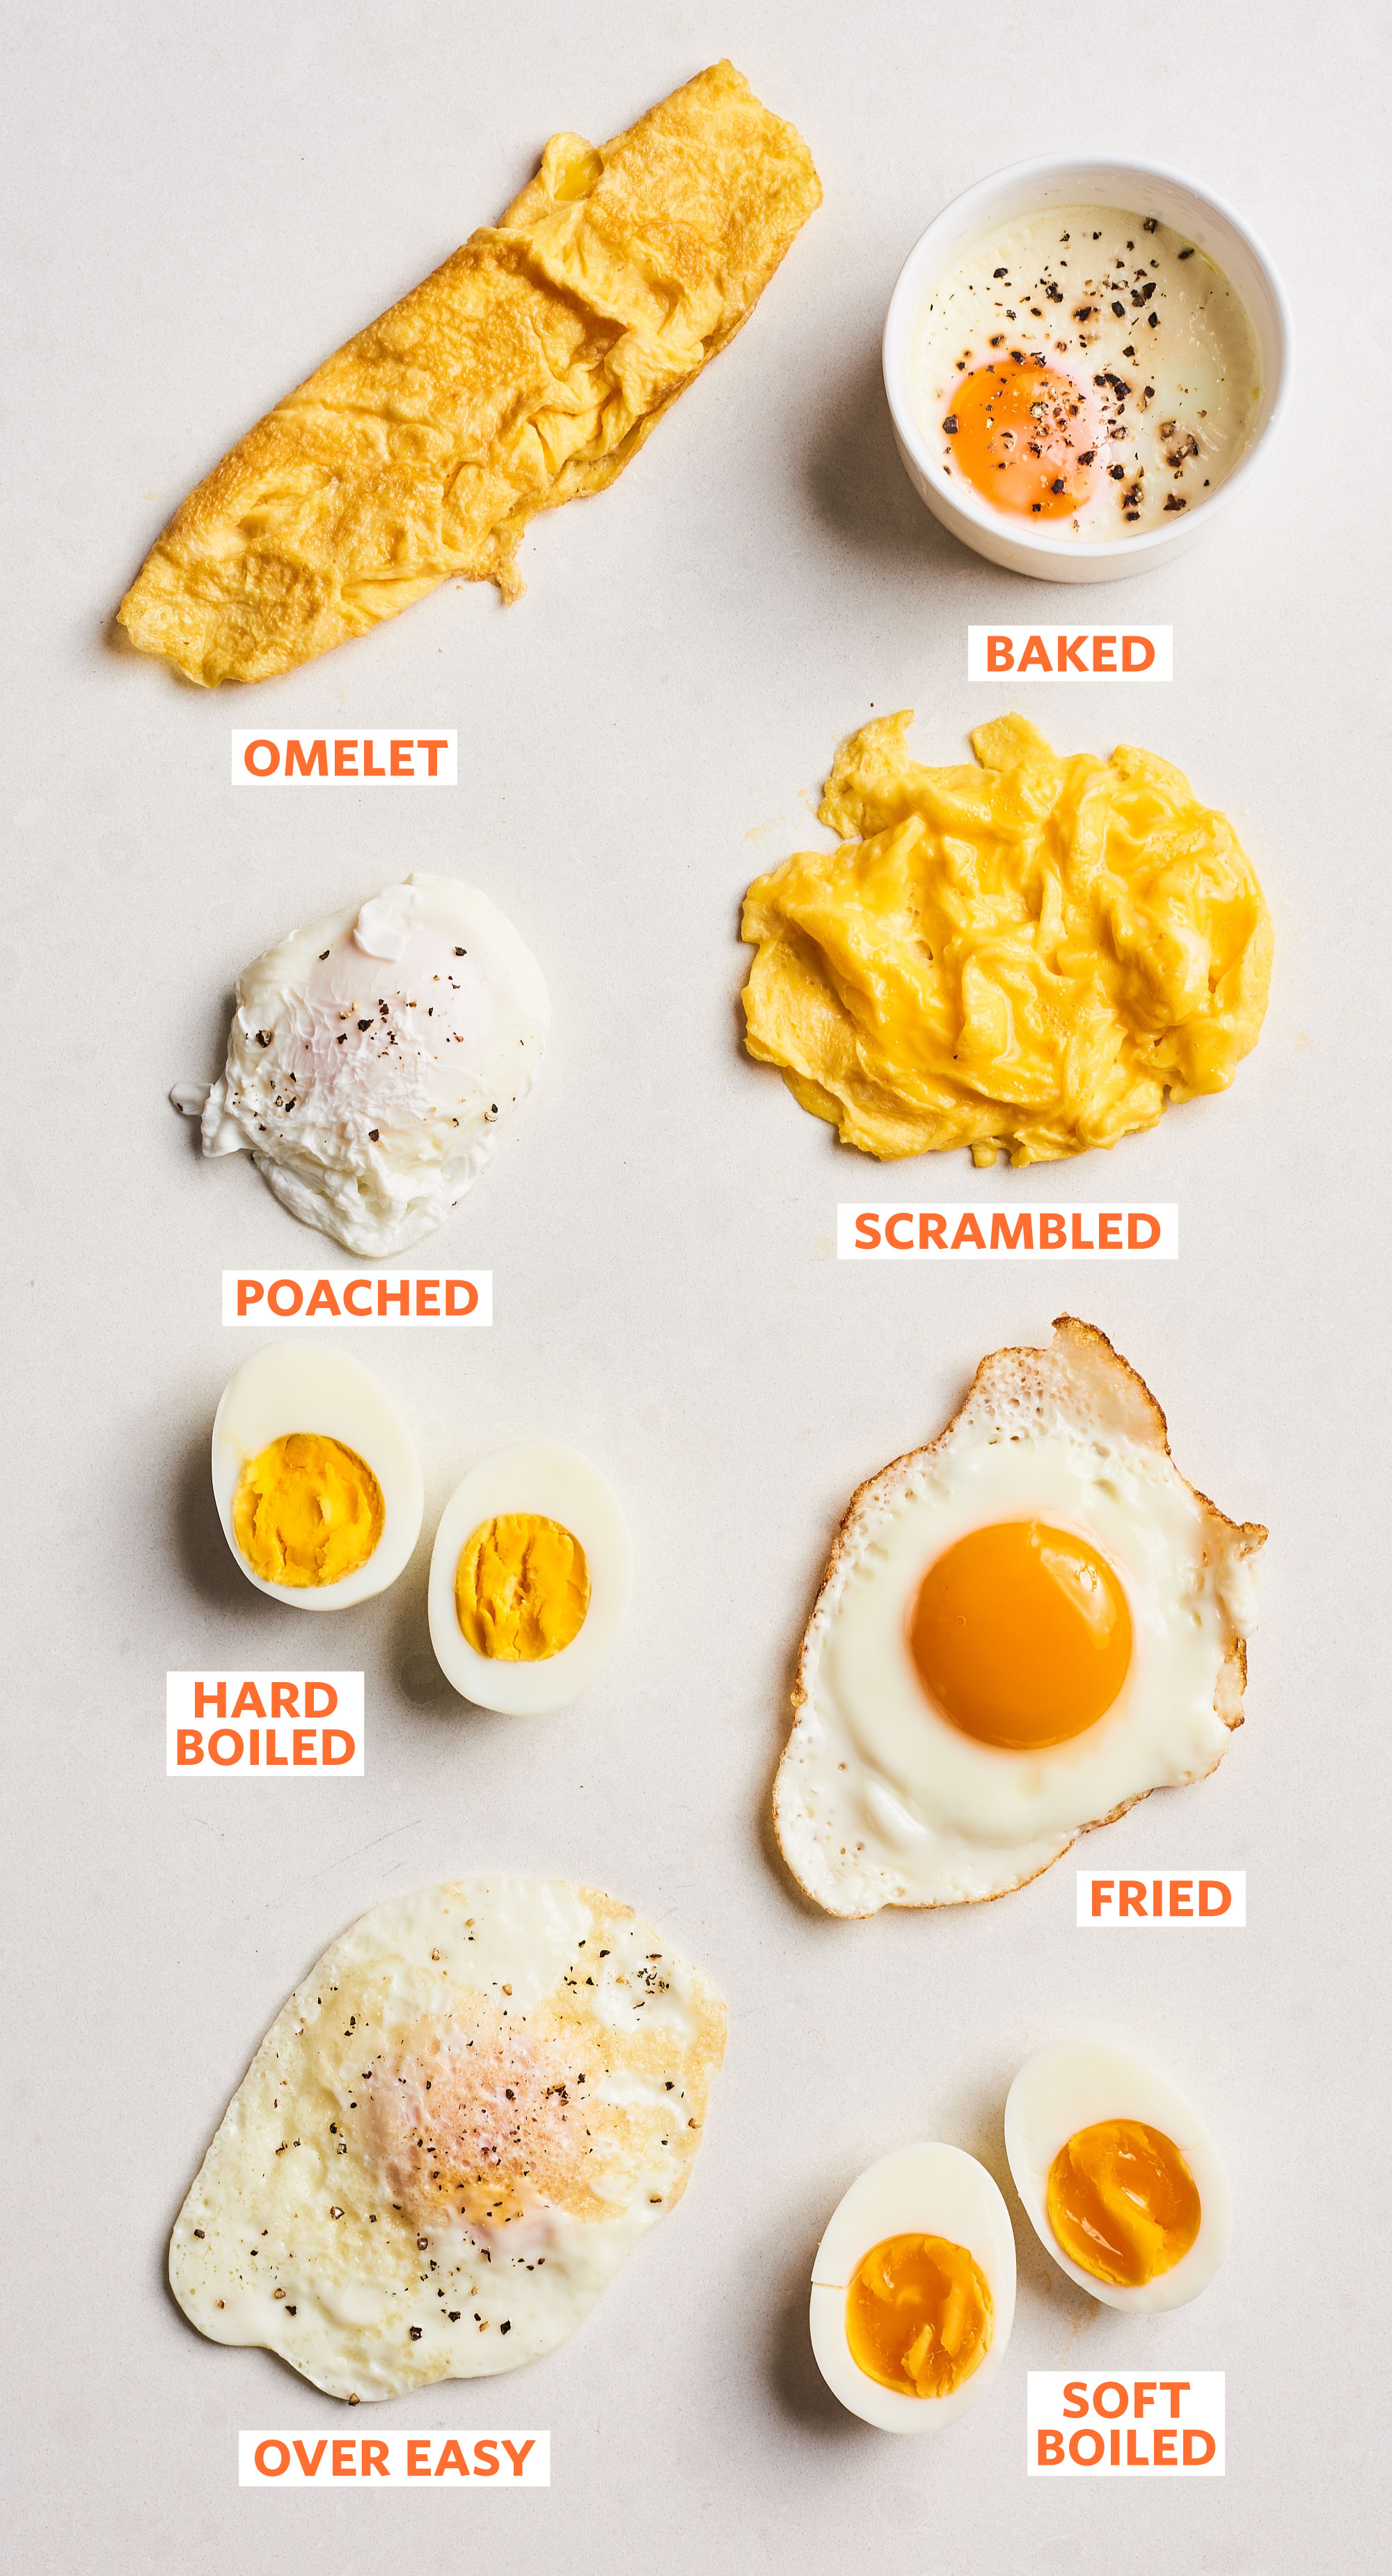 8 Essential Methods for Cooking Eggs (All In One Place)